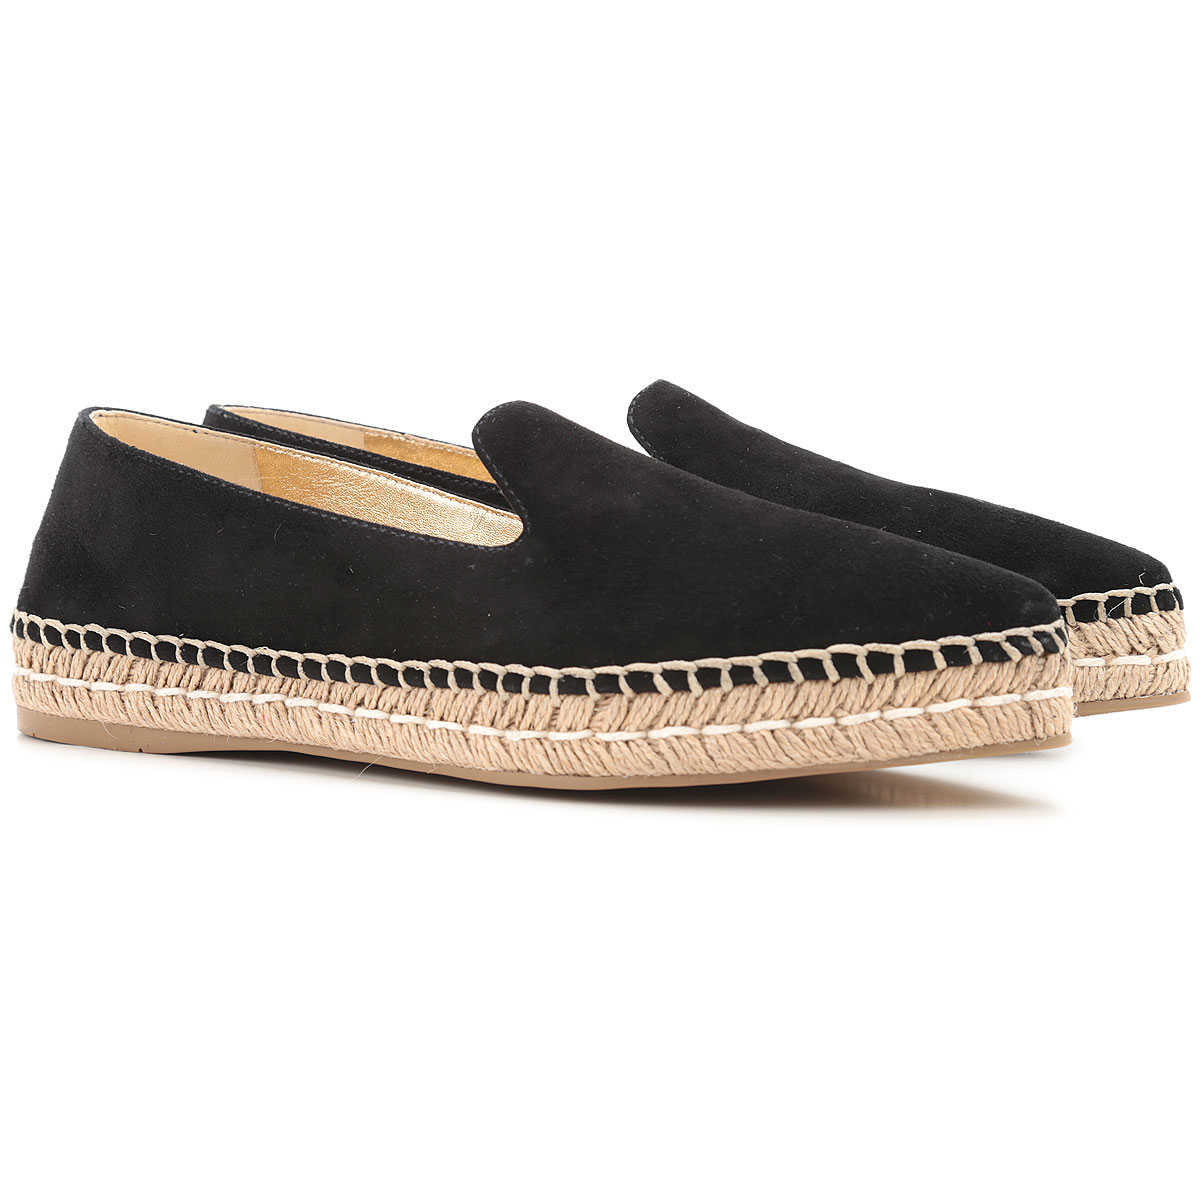 Prada Loafers for Women On Sale in Outlet Black SE - GOOFASH